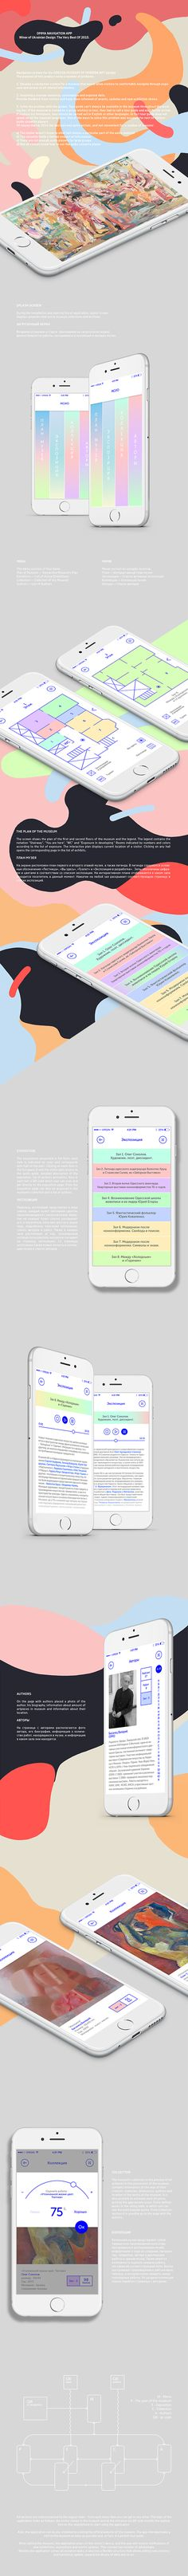 Winer of Ukrainian Design: The Very Best Of system for the ODESSA MUSEUM OF MODERN ART (guide)The purpose of this product solve a number of problems. Develop a navigation system for a museum that would allow visitors to comfortabl… App Ui Design, Mobile App Design, User Interface Design, Web Design, Graphic Design, Motion App, Screen Design, Best Apps, Creative Industries